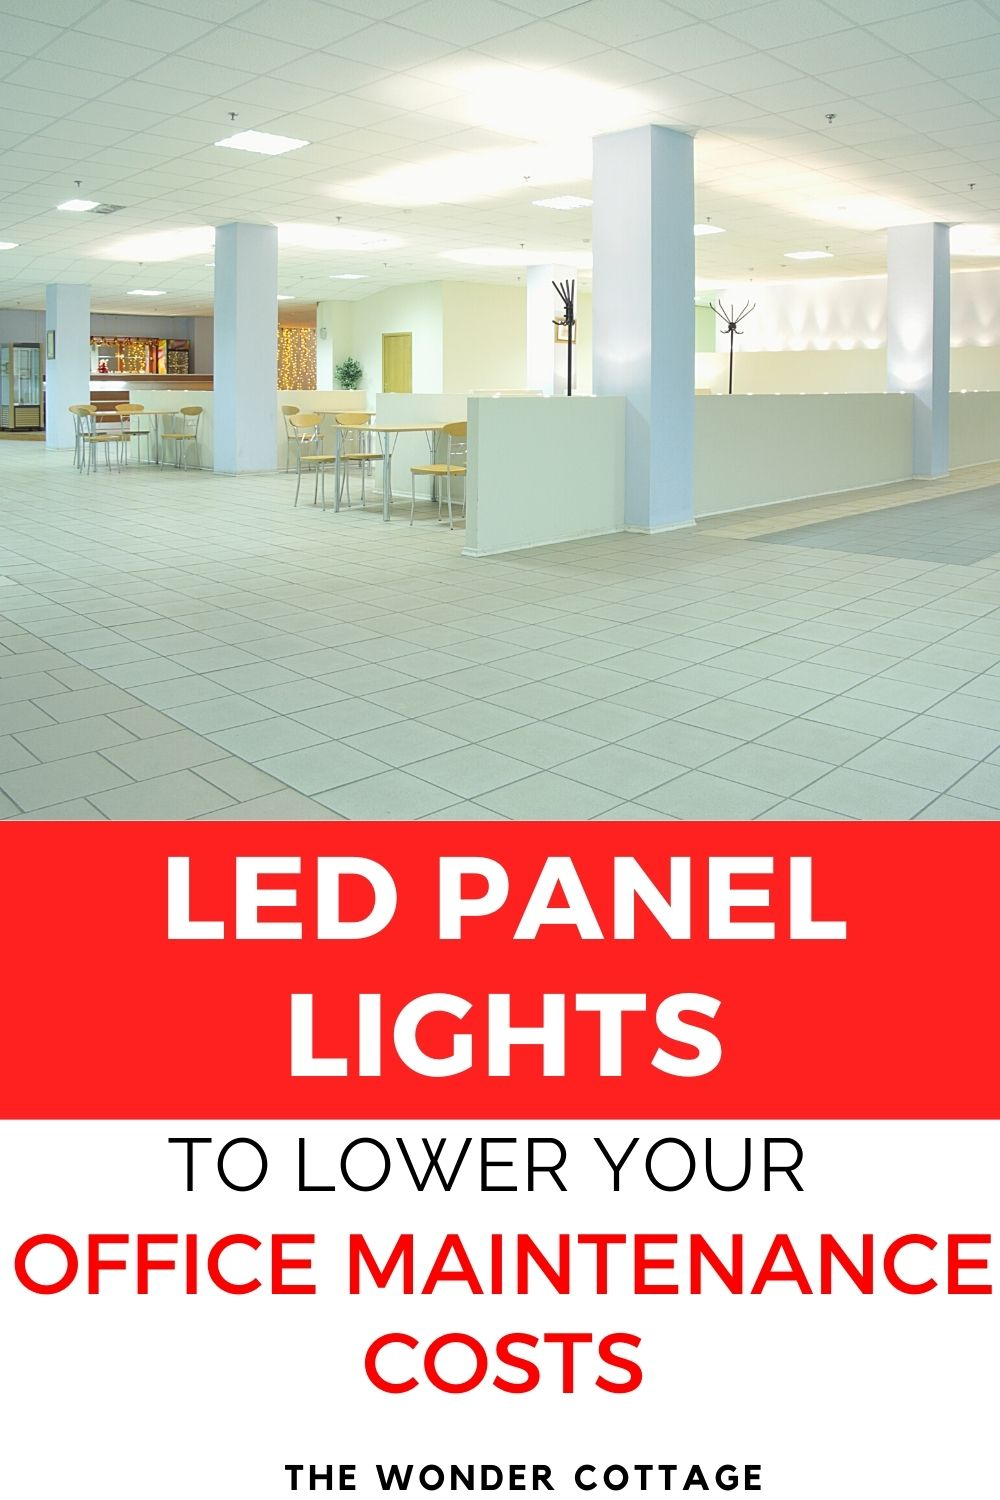 LED panel lights to lower your office maintenance costs